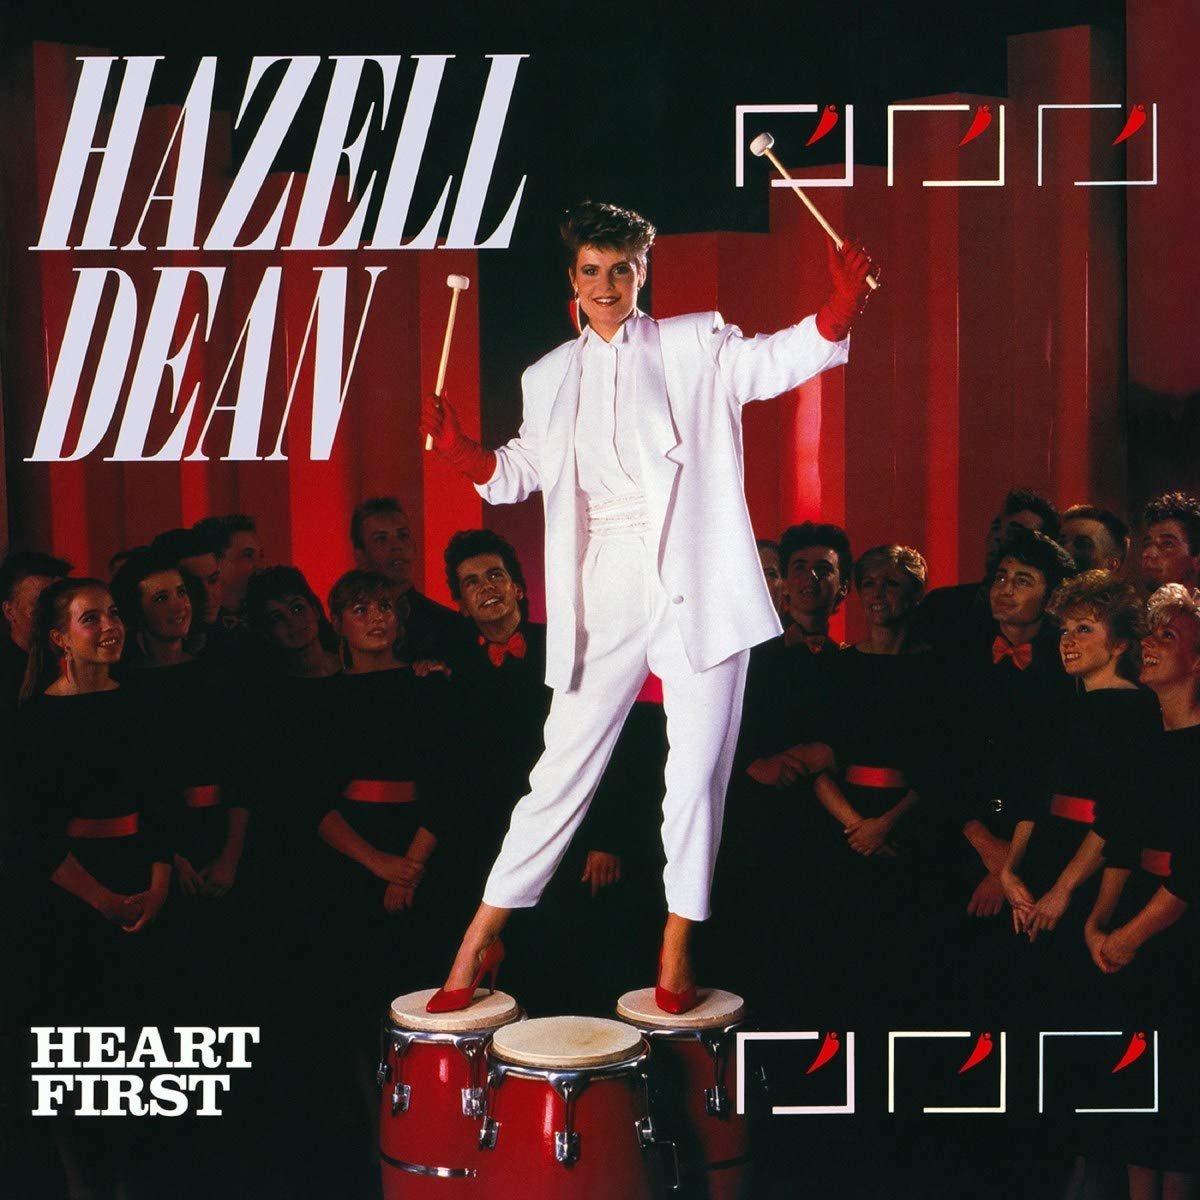 Hazell Dean – Heart First (2020) [FLAC]